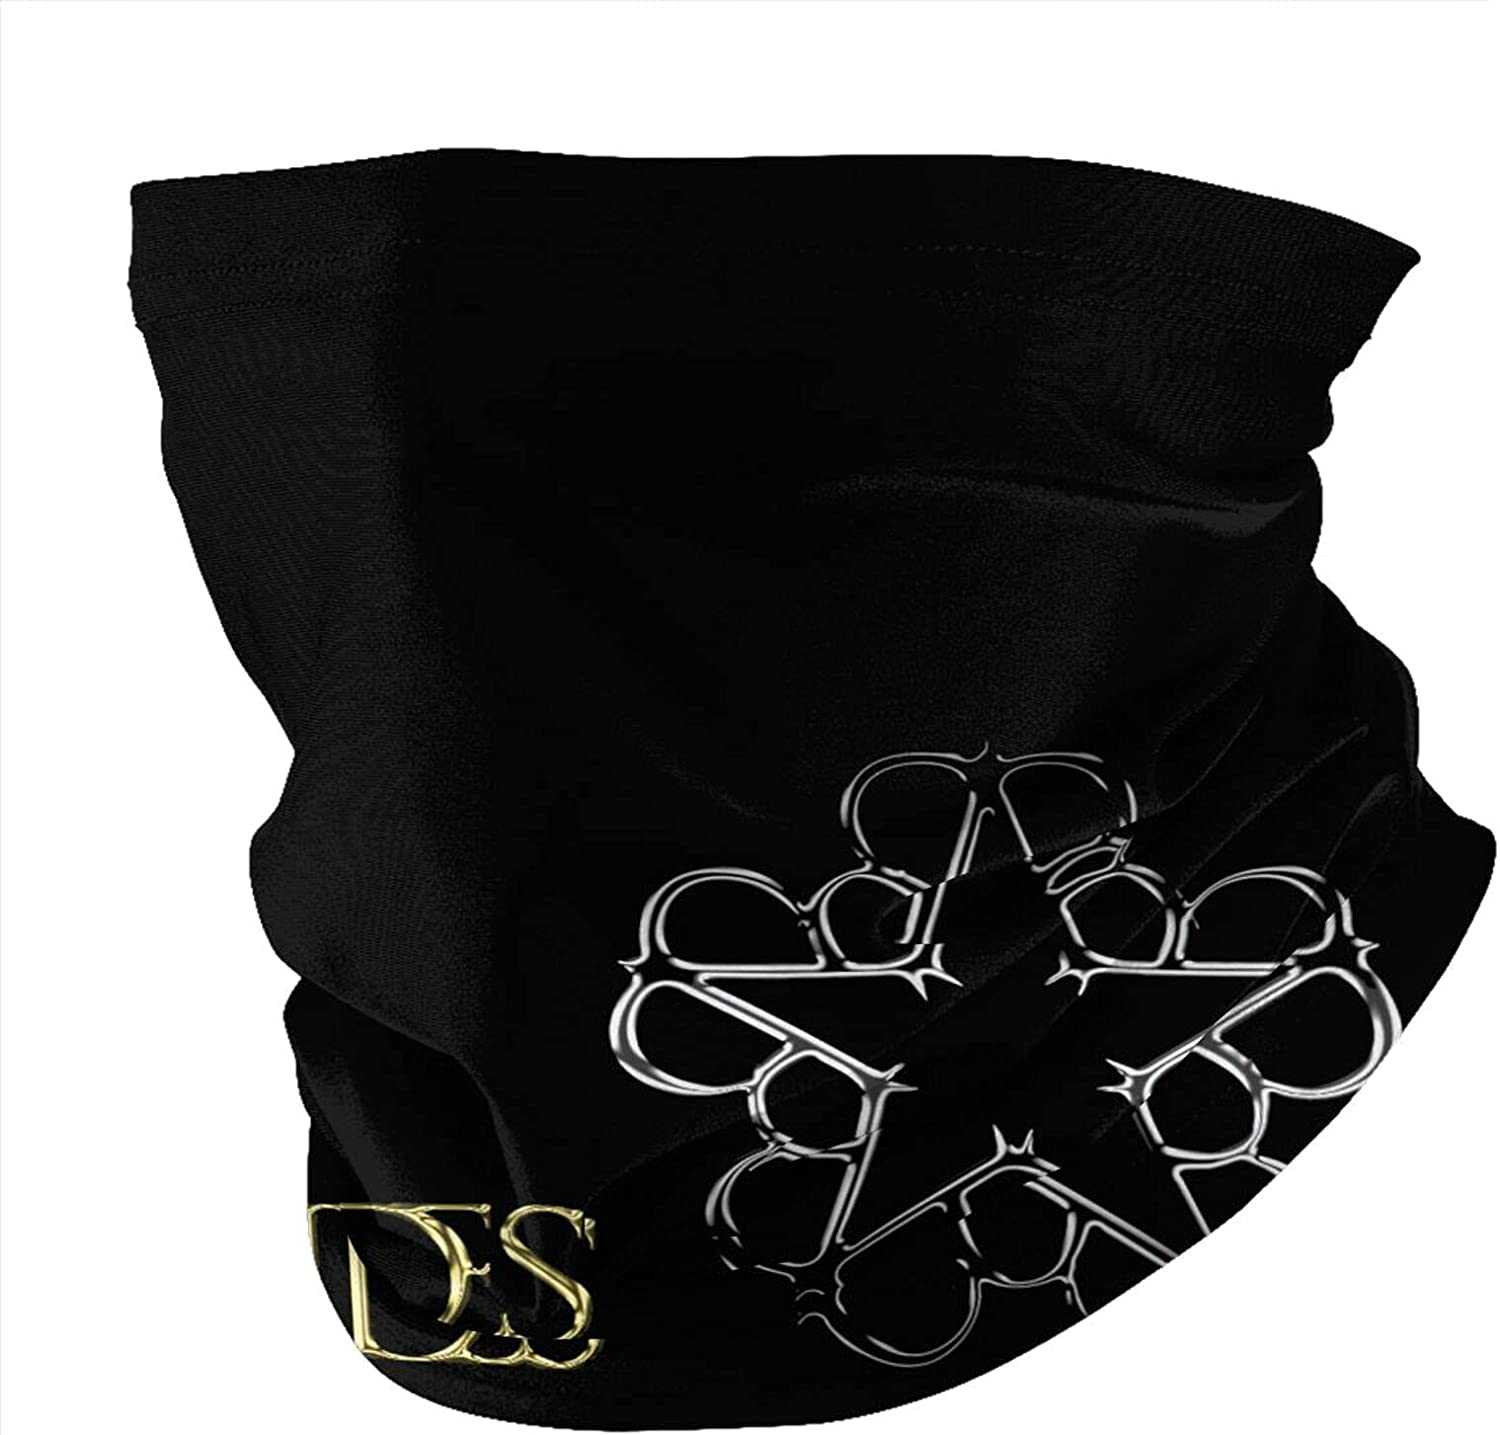 Black Veil Brides Logo Unisex Neck Gaiter Face Mask Mens Woman Multifunction Balaclava Face Cover,Cycling Mask,Sport Neck Gaiter,Hiking Scarf,Fishing Mask, Motorcycle Face Cover